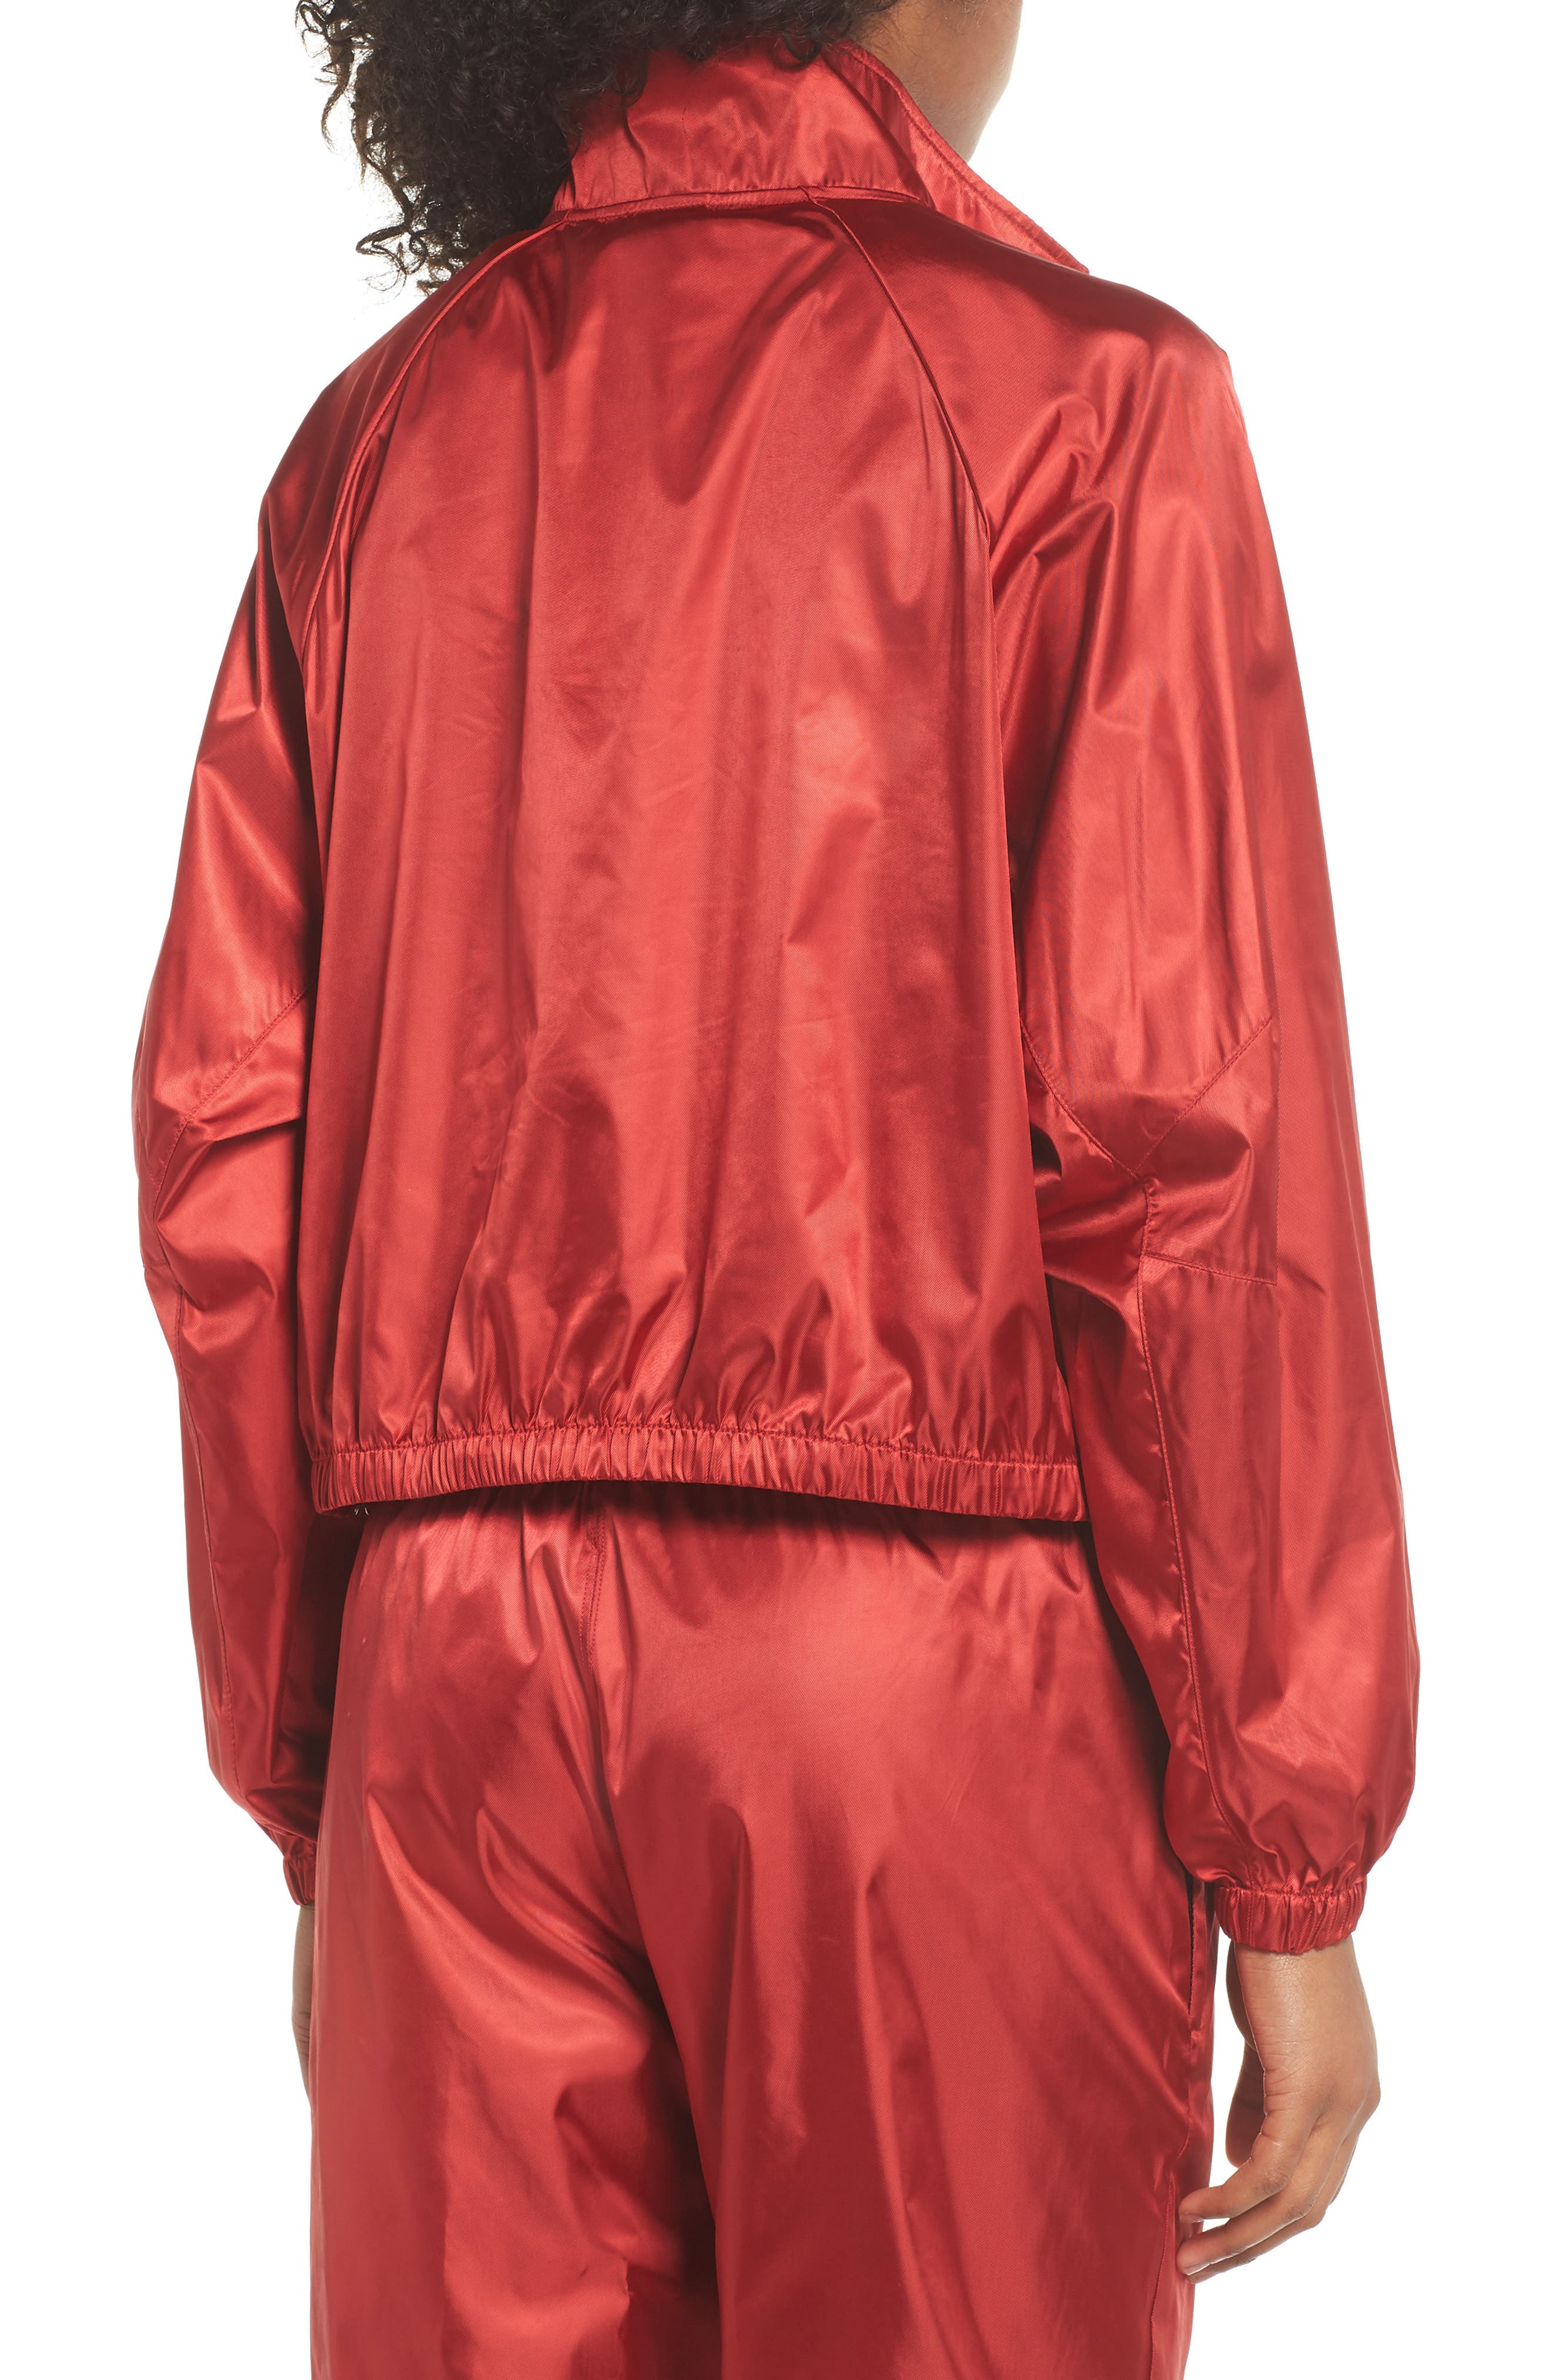 NikeLab Collection Satin Half Zip Top,                             Alternate thumbnail 2, color,                             600